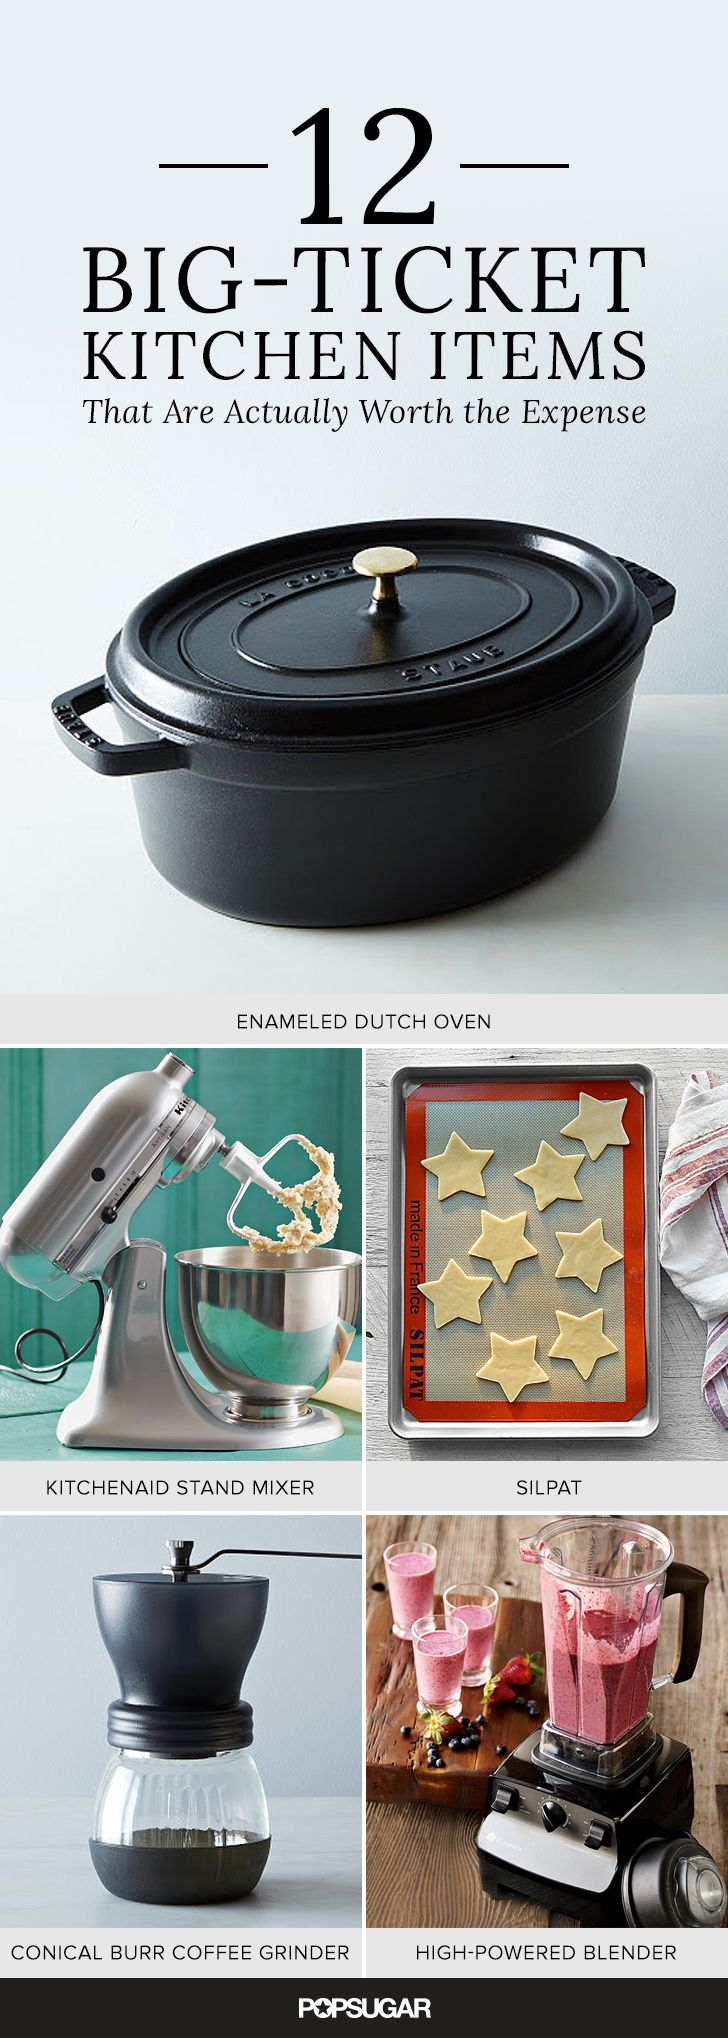 In a dream world, money would grow on trees and every piece of equipment in your kitchen could be top-notch, but that isn't reality. The trick is knowing where to allocate your budget instead of frittering away funds on less-important pieces. These 12 items are all worth considering investing in the next time your budget allows for an upgrade; consider it the ultimate (practical) kitchen-equipment wish list.